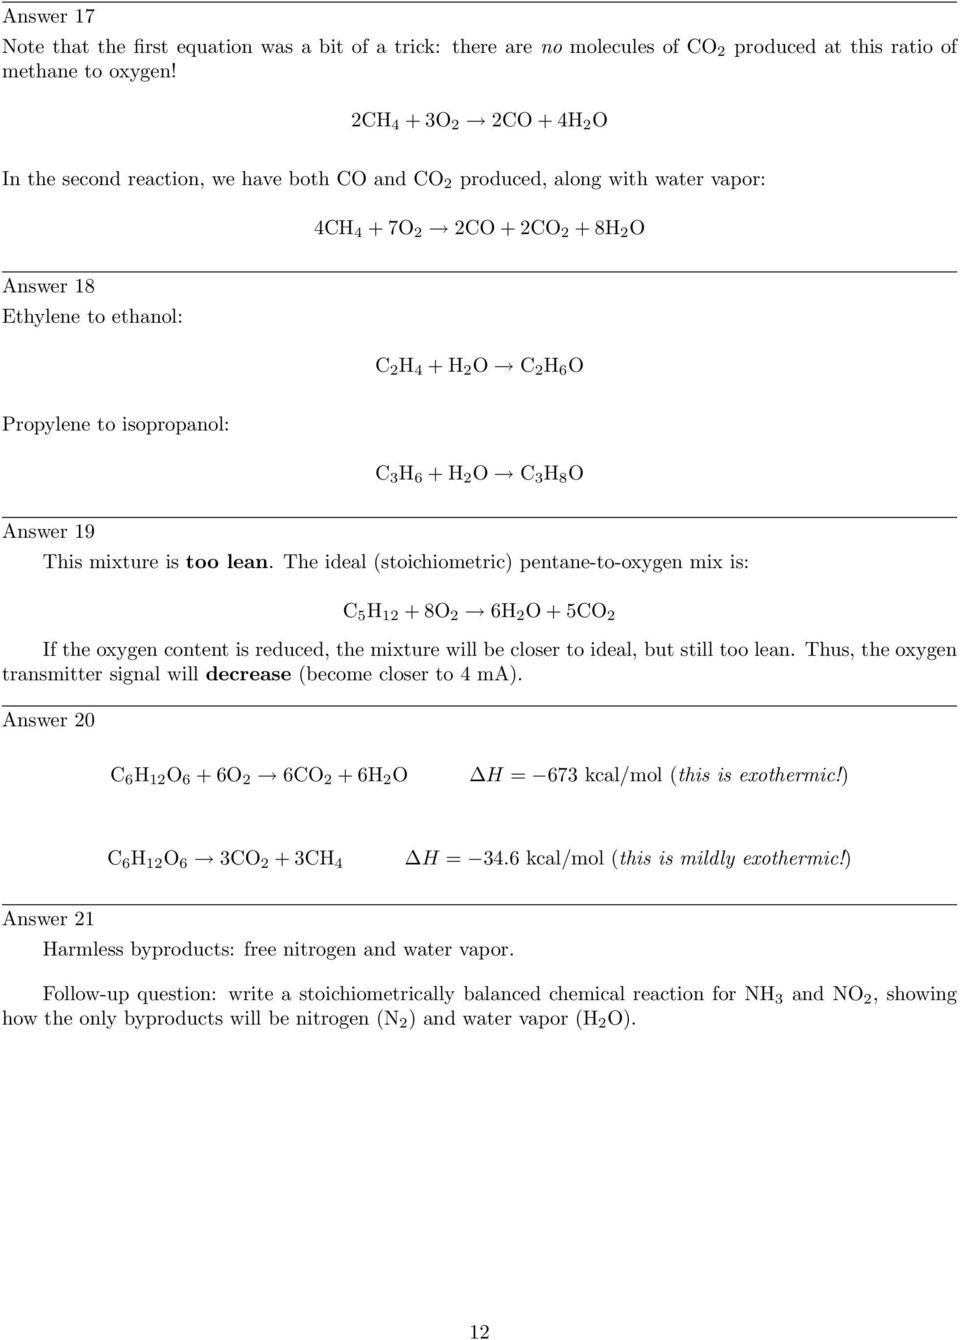 Balancing chemical reaction equations (stoichiometry) - PDF